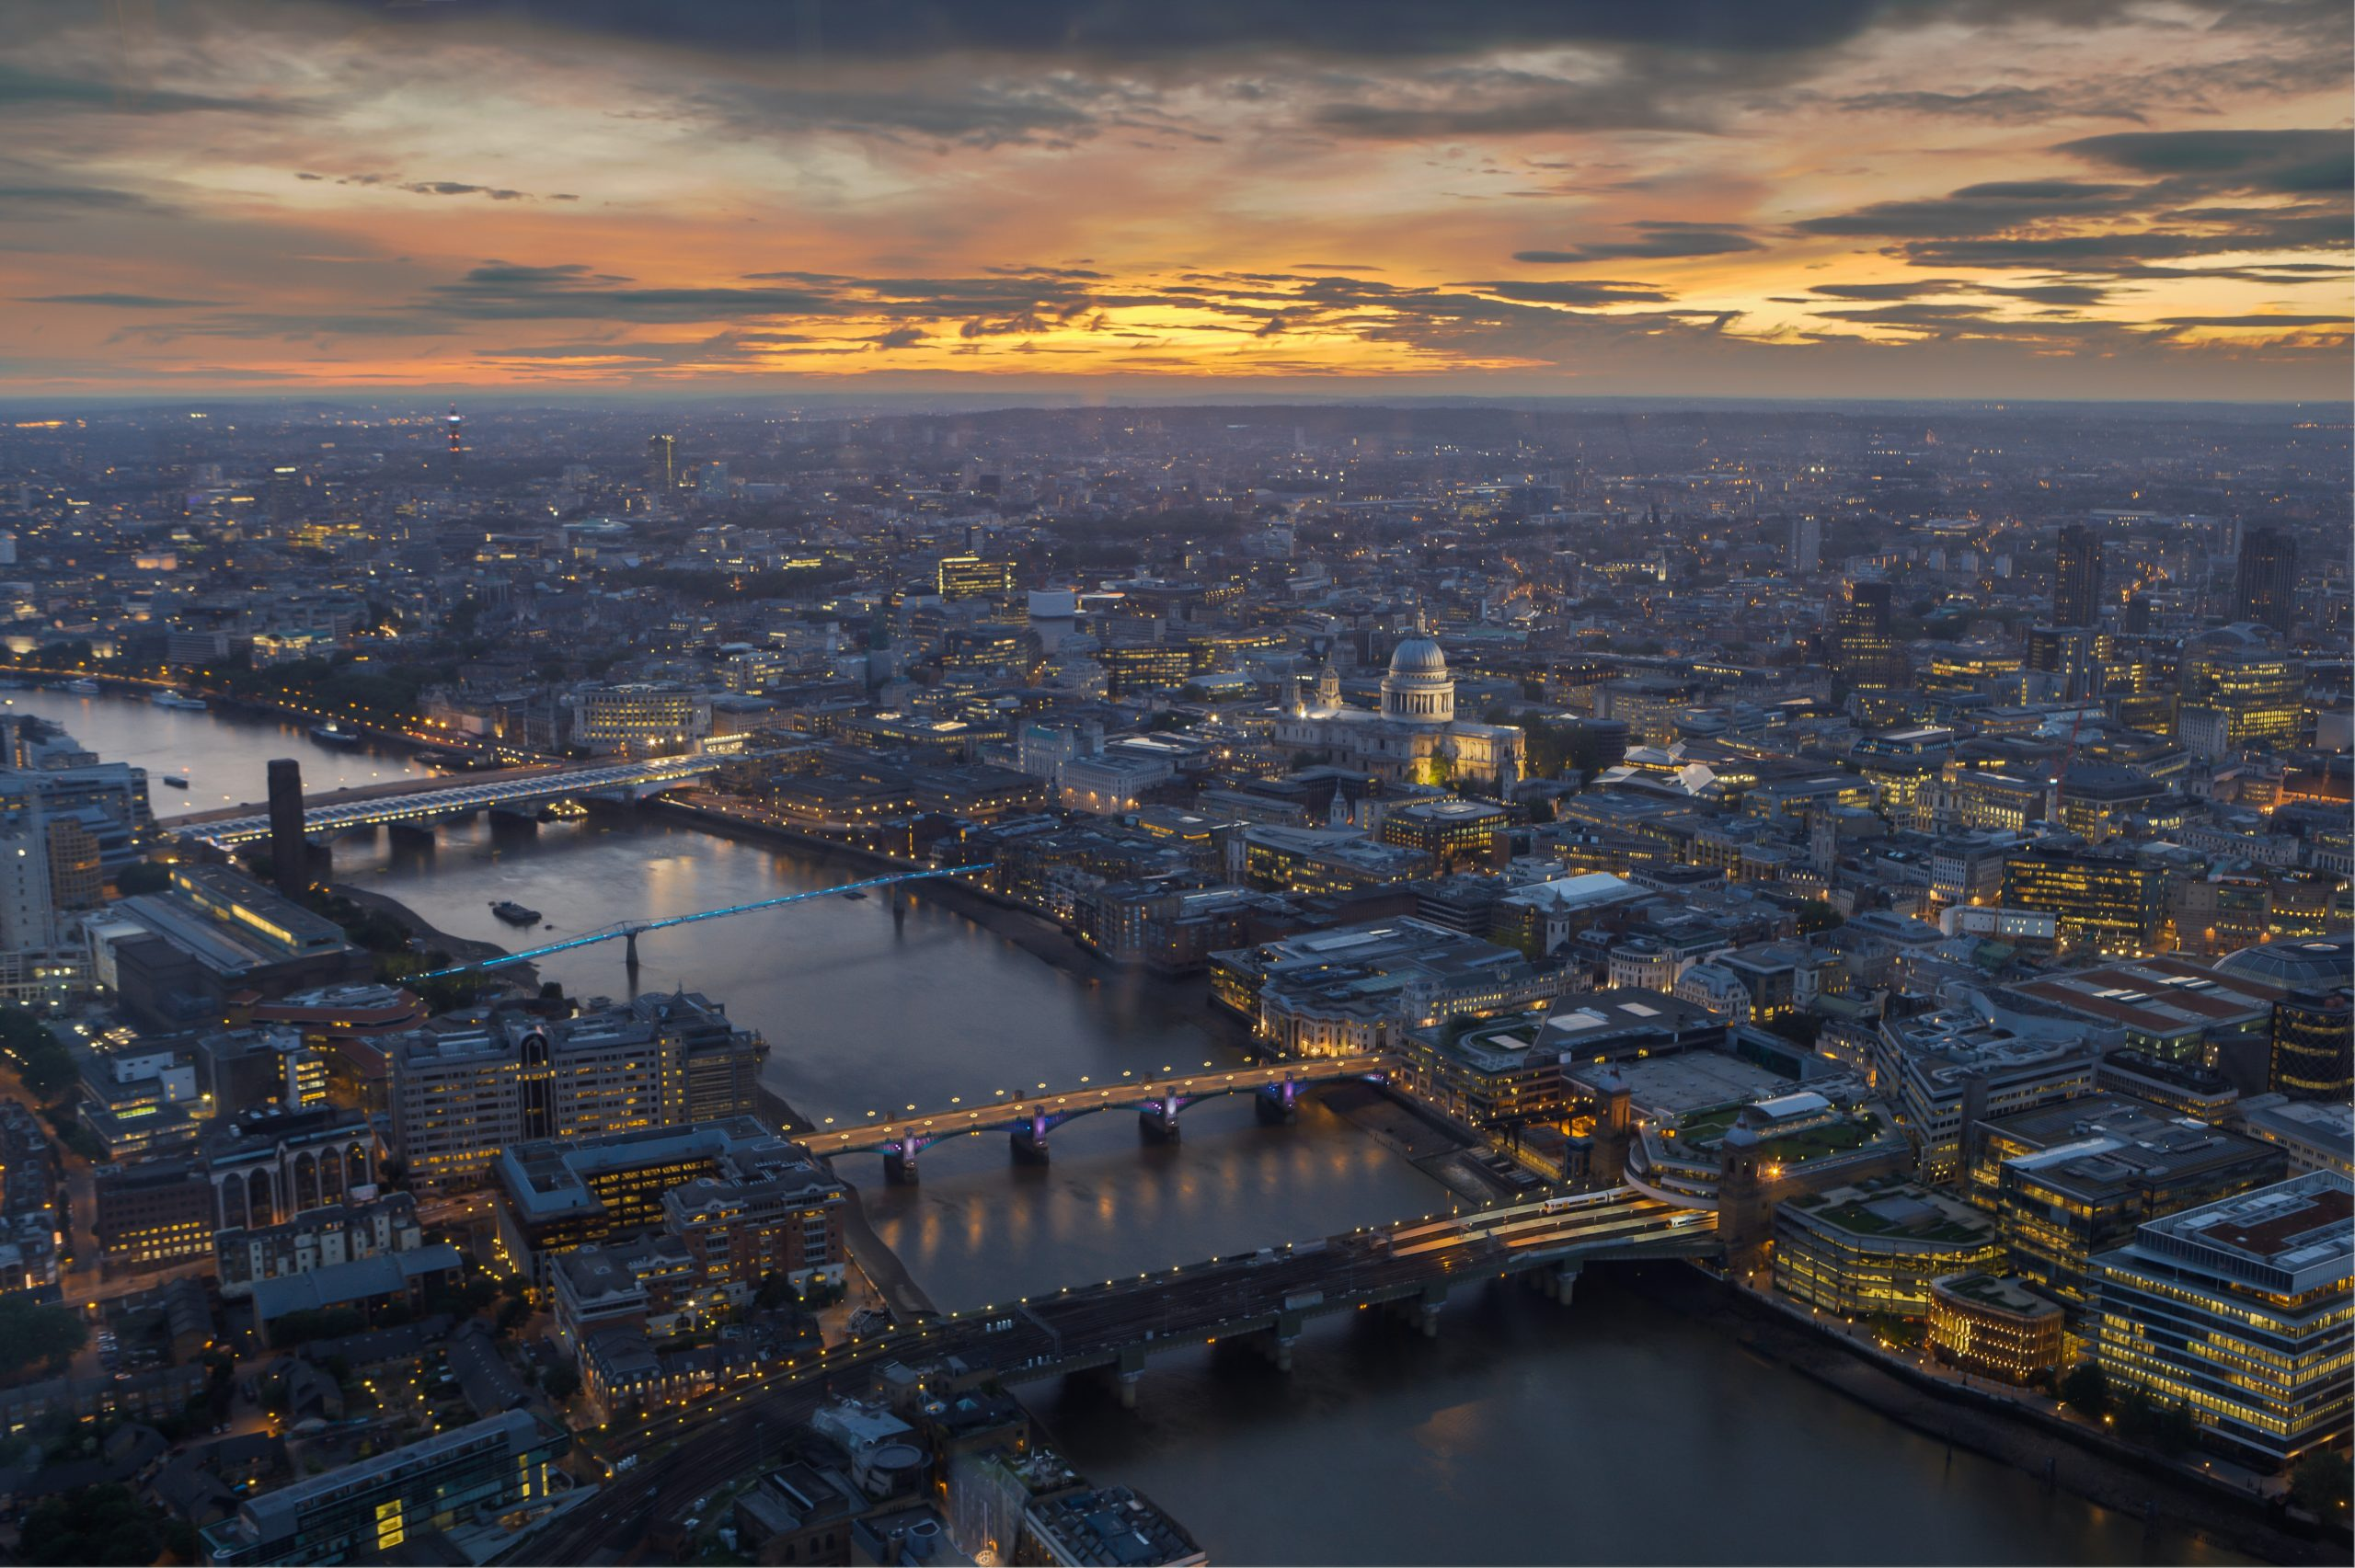 aerial view photography of the city